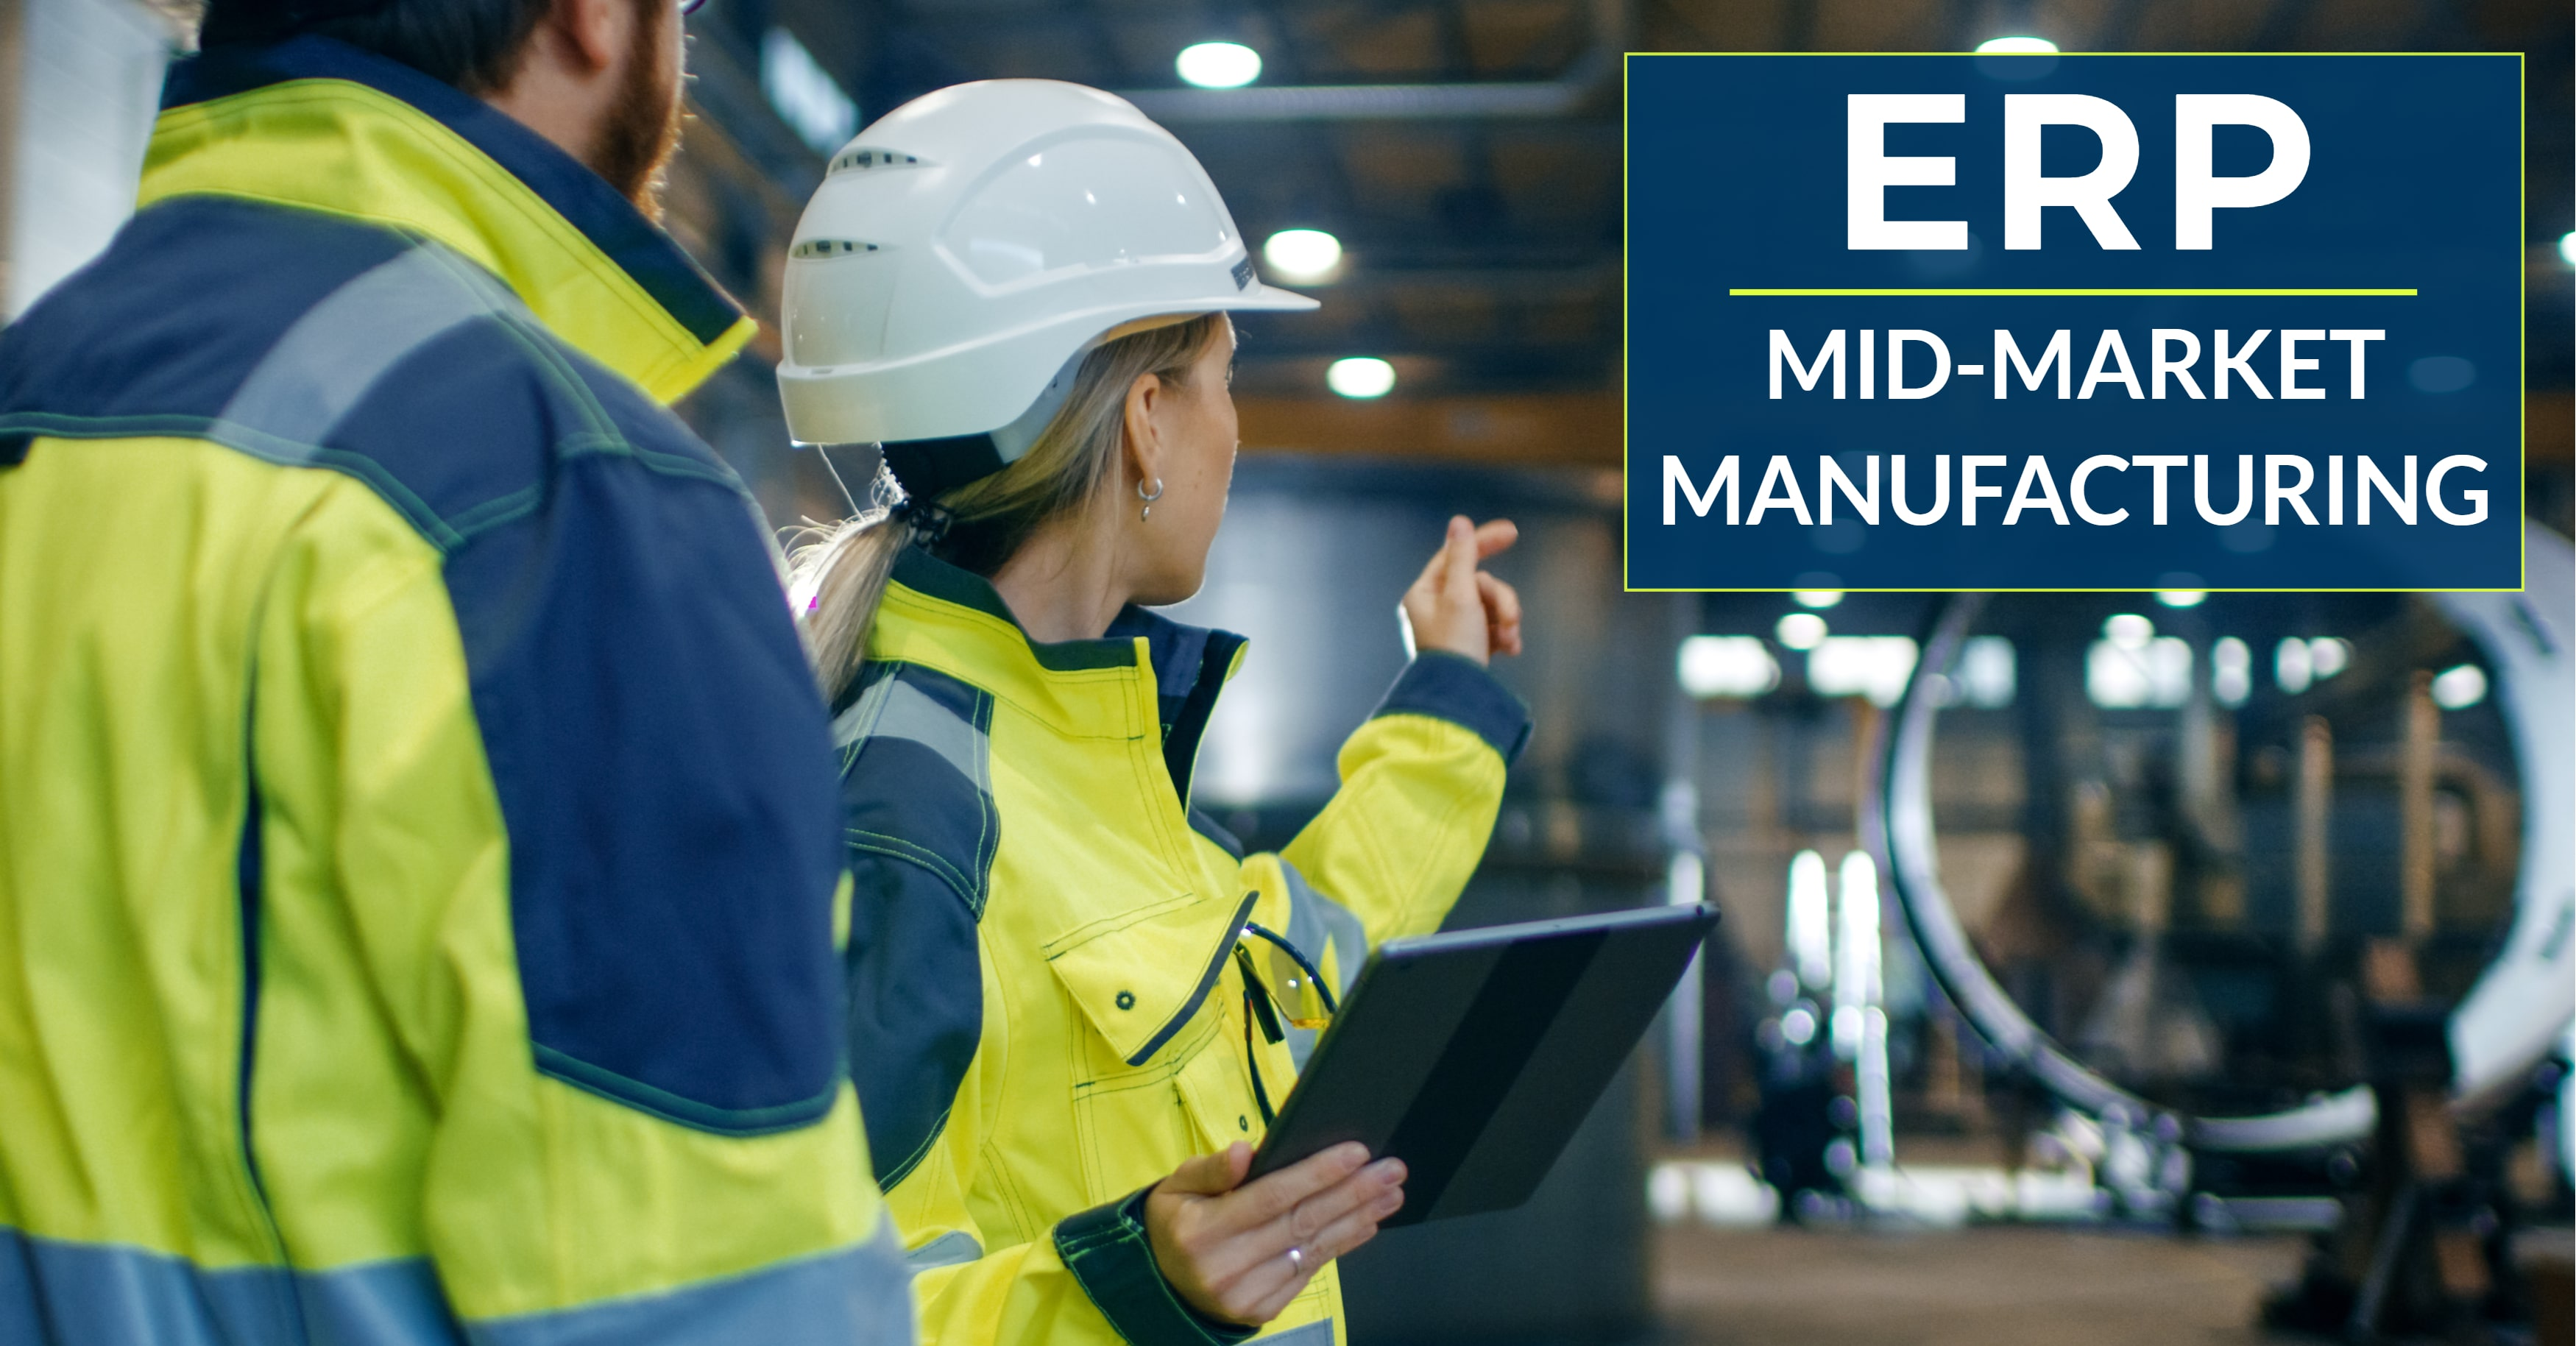 How Can ERP Tackle Mid-Market Manufacturing Challenges?